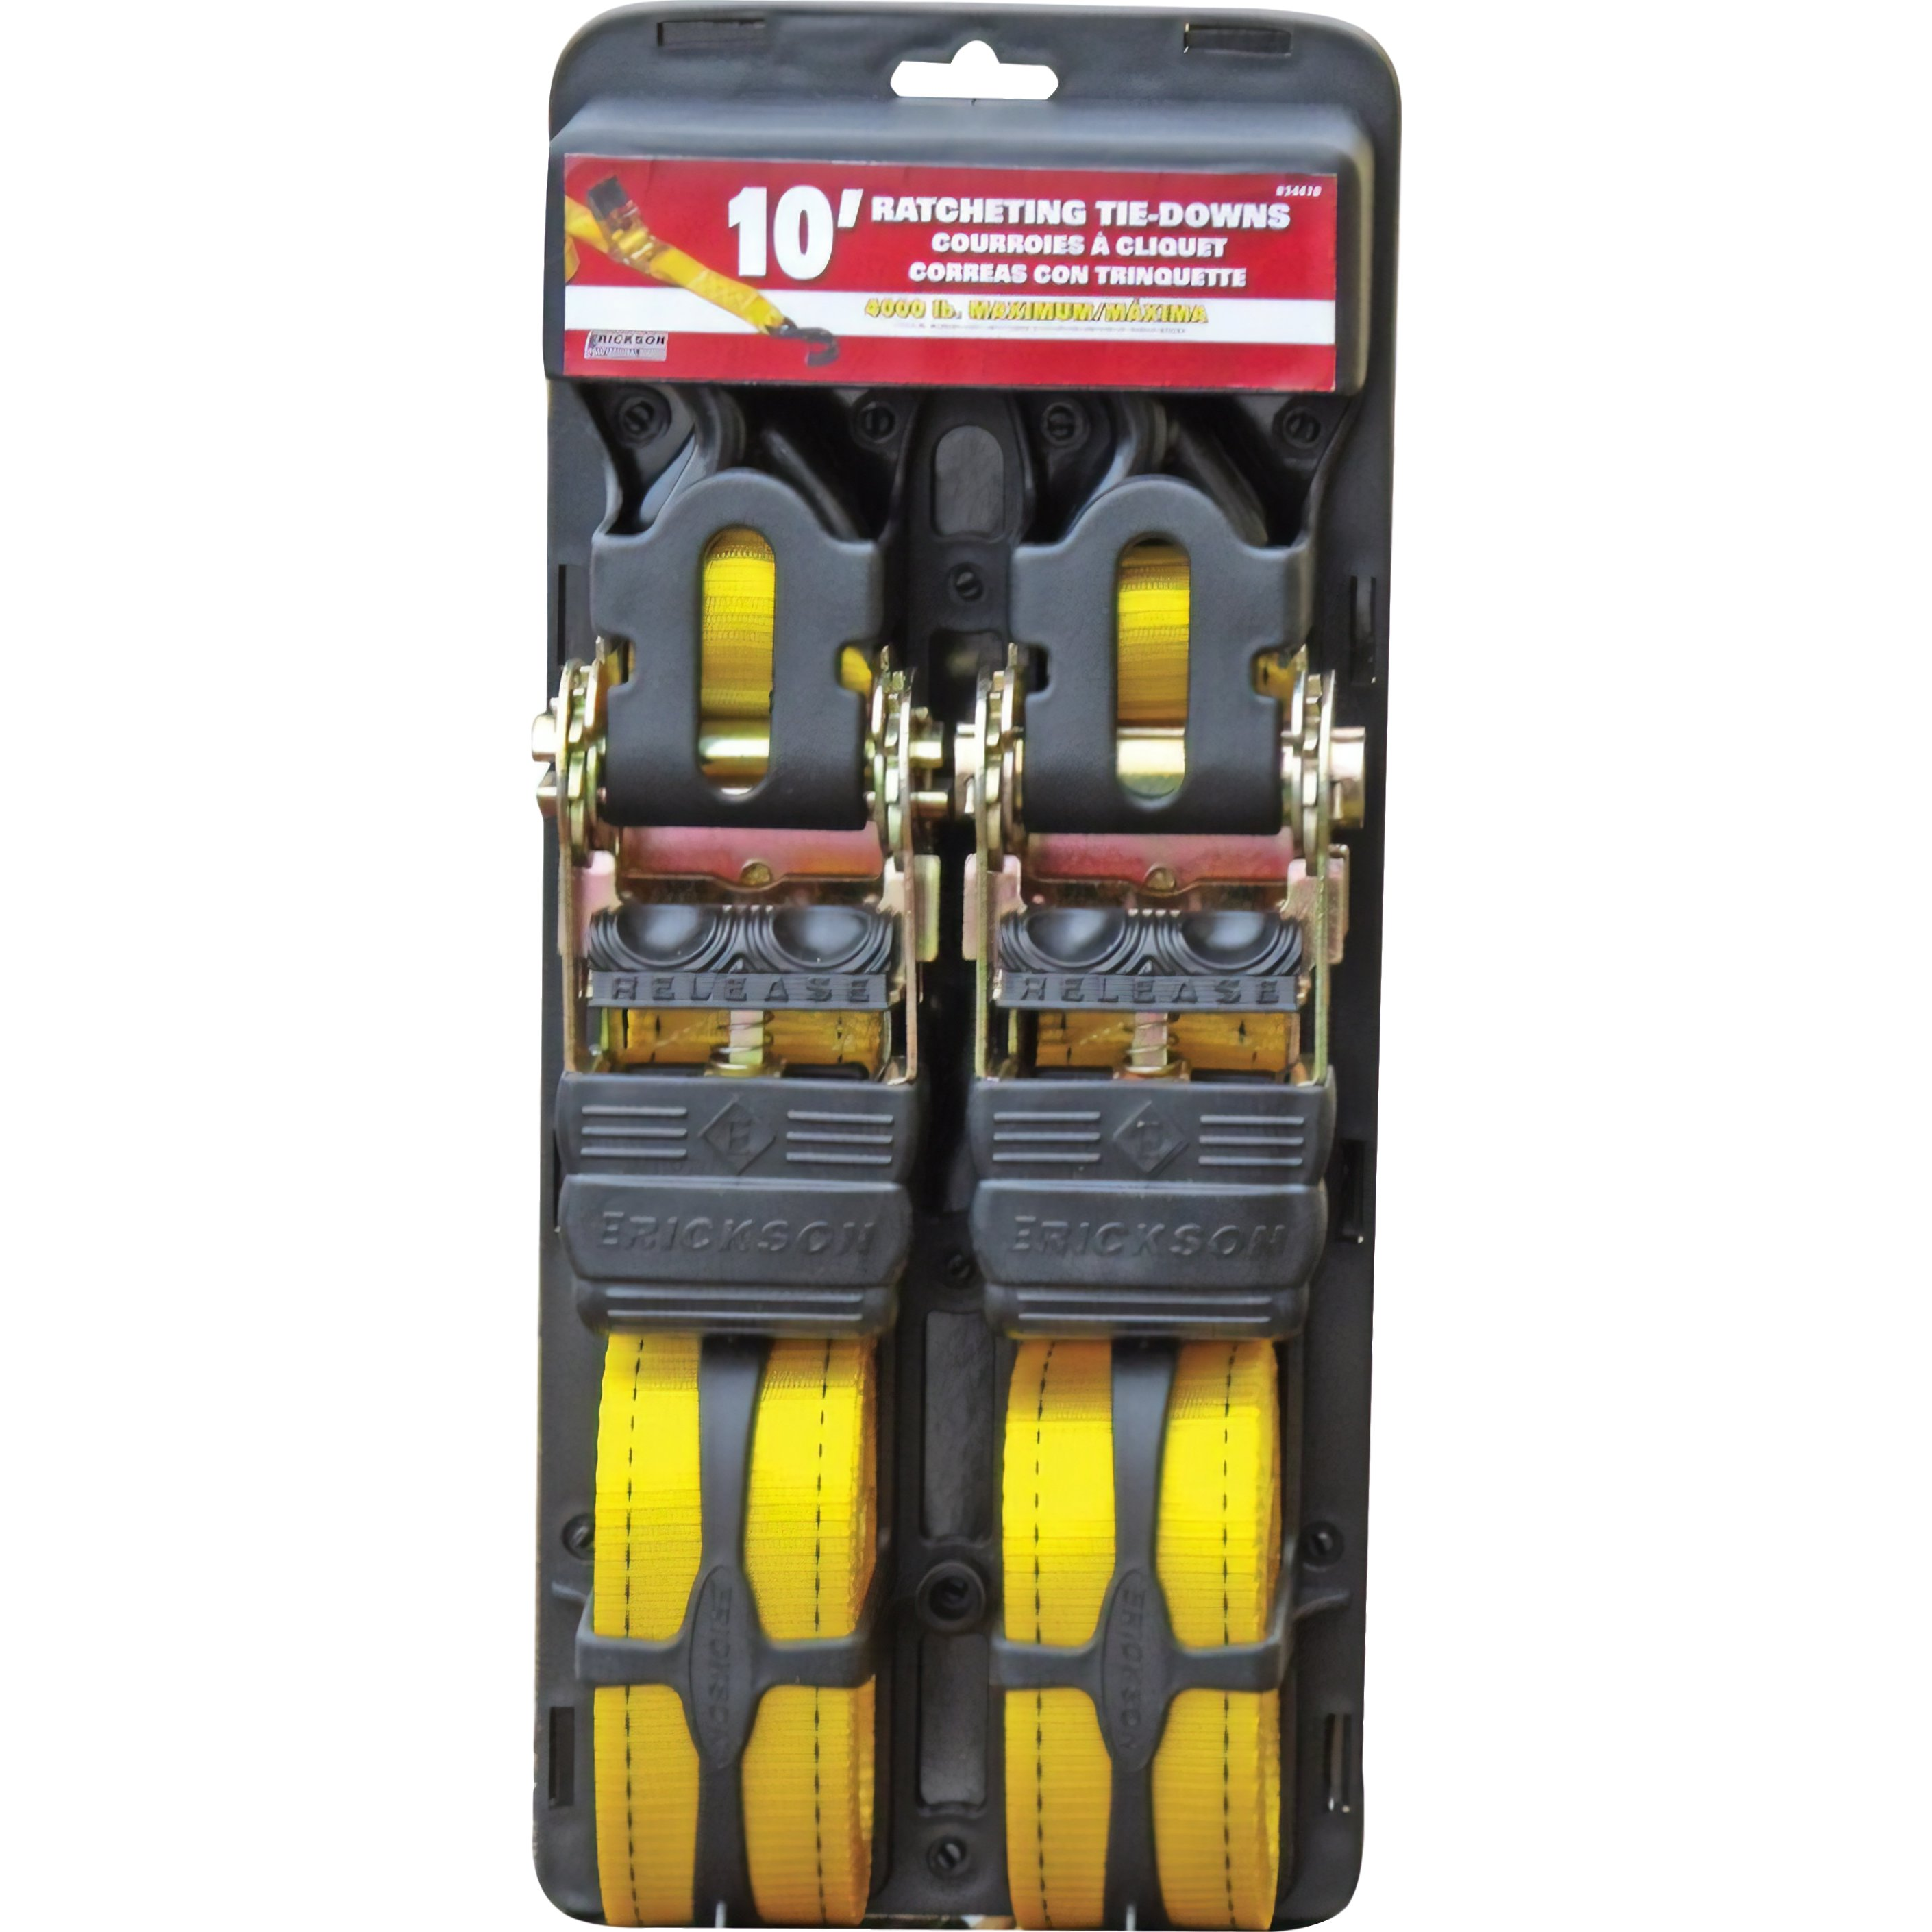 "Findingking Pro Series 2"" x 10' Ratchet Straps 4000 lb Yellow 2Pcs at Sears.com"